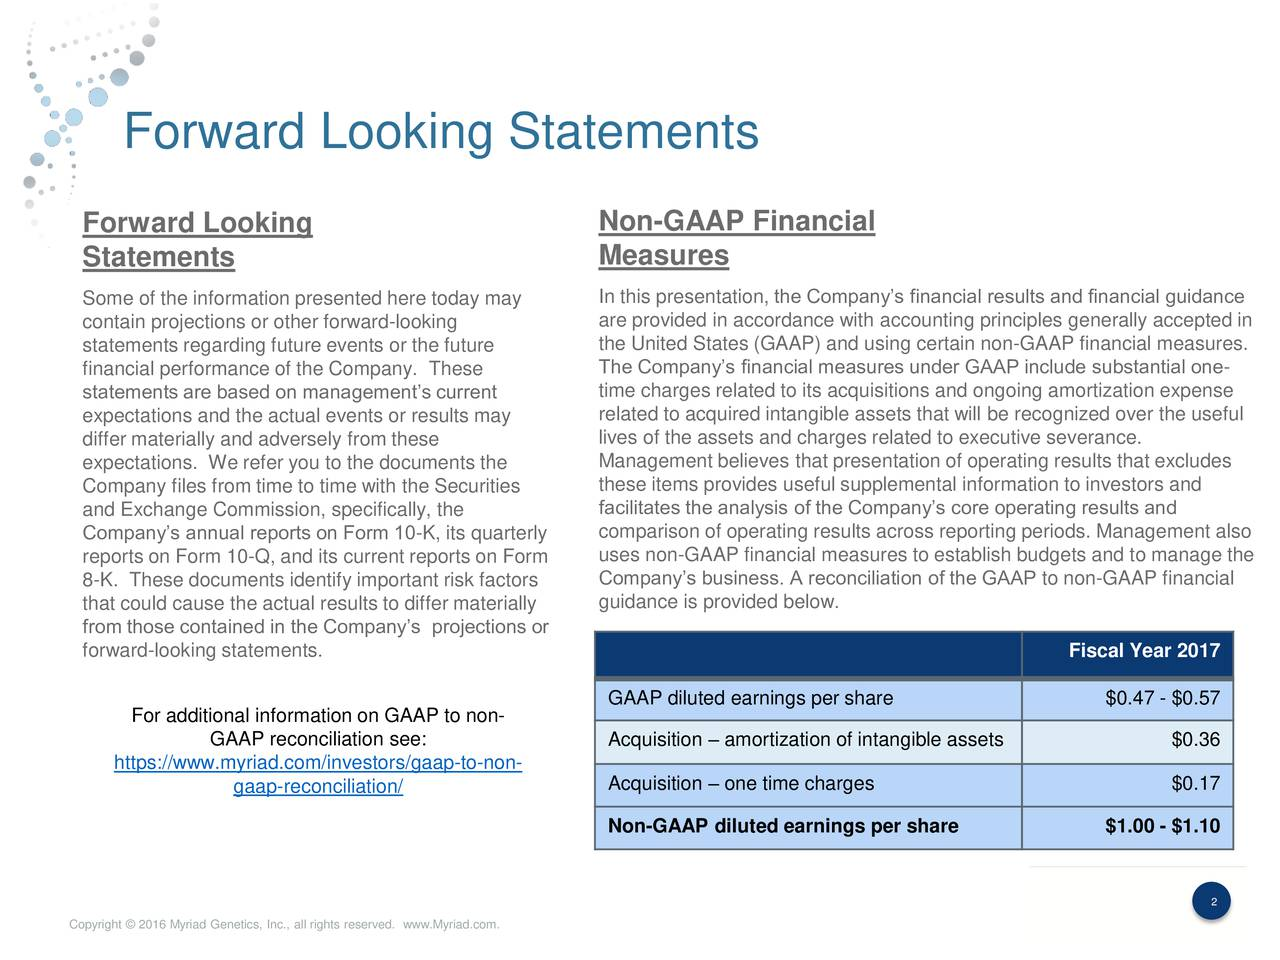 Forward Looking Non-GAAP Financial Statements Measures Some of the information presented here today may In this presentation, the Companys financial results and financial guidance contain projections or other forward-looking are provided in accordance with accounting principles generally accepted in statements regarding future events or the future the United States (GAAP) and using certain non-GAAP financial measures. financial performance of the Company. These The Companys financial measures under GAAP include substantial one- time charges related to its acquisitions and ongoing amortization expense statements are based on managements current expectations and the actual events or results may related to acquired intangible assets that will be recognized over the useful differ materially and adversely from these lives of the assets and charges related to executive severance. expectations. We refer you to the documents the Management believes that presentation of operating results that excludes Company files from time to time with the Securities these items provides useful supplemental information to investors and and Exchange Commission, specifically, the facilitates the analysis of the Companys core operating results and Companys annual reports on Form 10-K, its quarterly comparison of operating results across reporting periods. Management also uses non-GAAP financial measures to establish budgets and to manage the reports on Form 10-Q, and its current reports on Form 8-K. These documents identify important risk factors Companys business. A reconciliation of the GAAP to non-GAAP financial that could cause the actual results to differ materiallyguidance is provided below. from those contained in the Companys projections or forward-looking statements. Fiscal Year 2017 GAAP diluted earnings per share $0.47 - $0.57 For additional information on GAAP to non- GAAP reconciliation see: Acquisition  amortization of intangible assets $0.36 https://www.myriad.com/investors/gaap-to-non- gaap-reconciliation/ Acquisition  one time charges $0.17 Non-GAAP diluted earnings per share $1.00 - $1.10 2 Copyright  2016 Myriad Genetics, Inc., all rights reserved. www.Myriad.com.